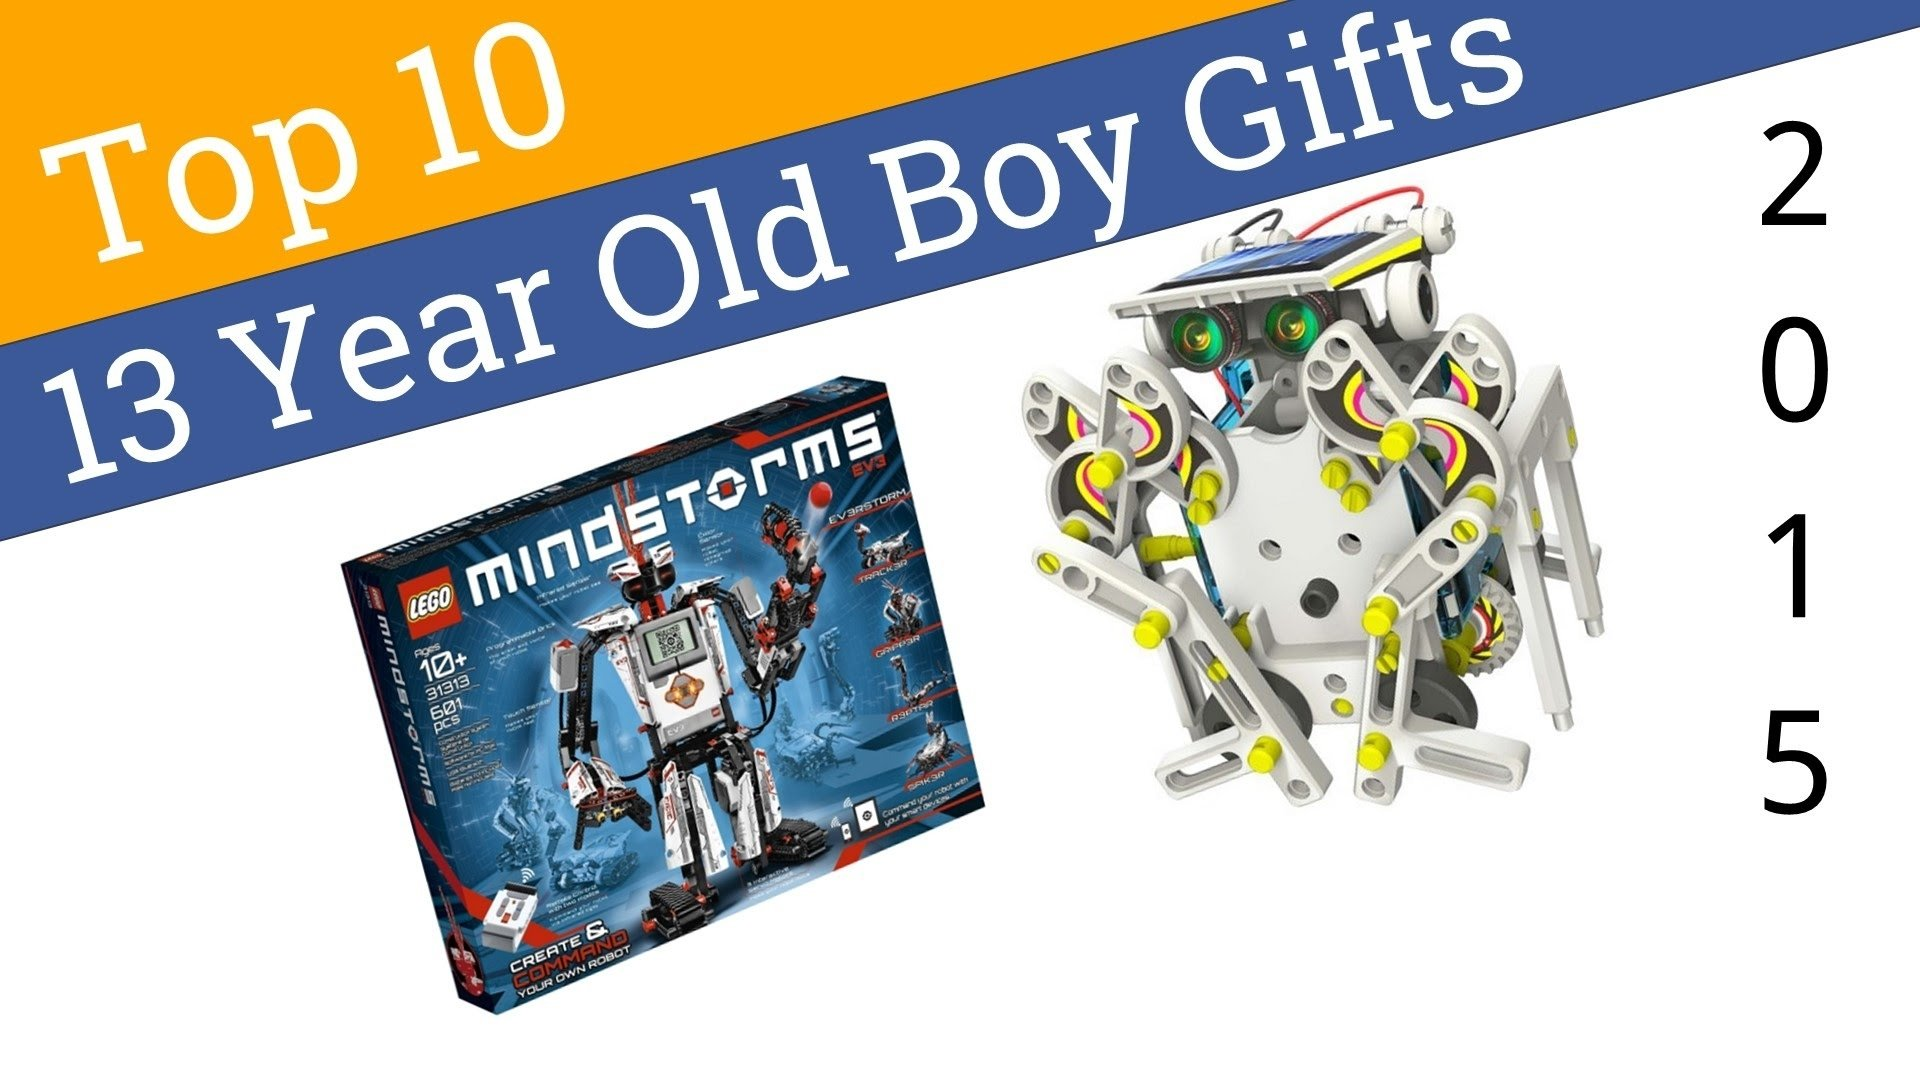 10 Famous Christmas Ideas For 13 Year Old Boys 10 best 13 year old boy gifts 2015 youtube 9 2020